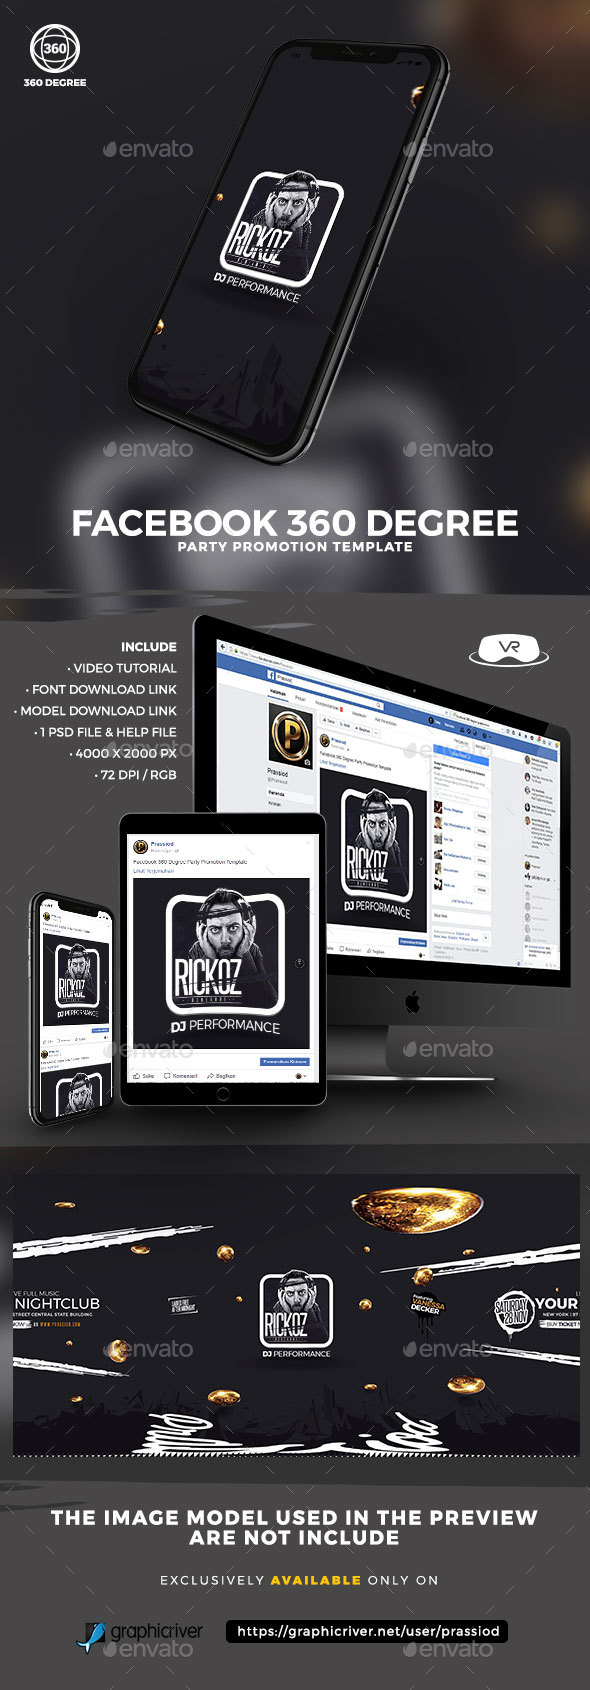 Facebook 360 Degree Party Promotion Template - Miscellaneous Social Media